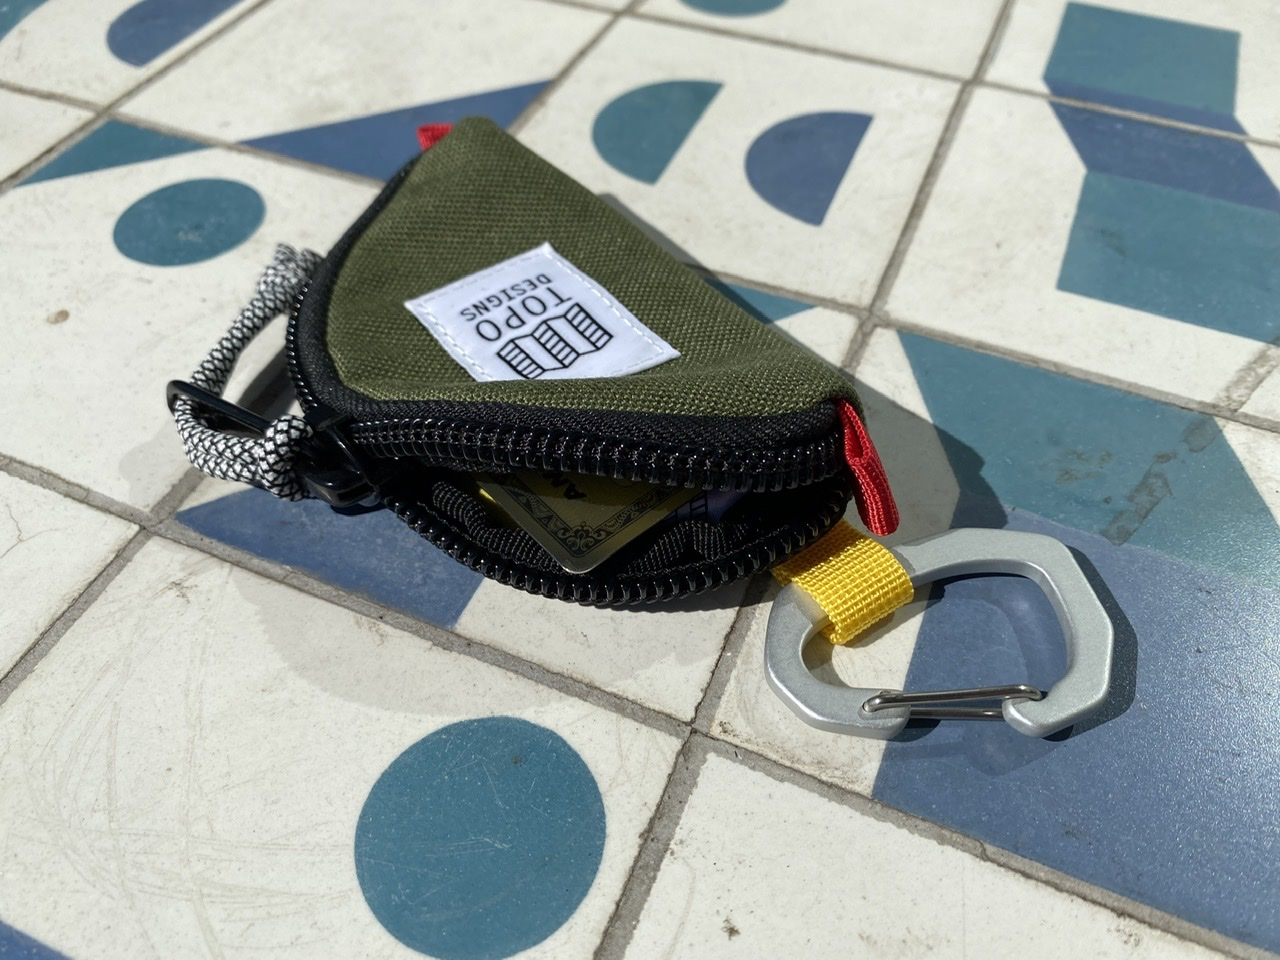 Topo Designs Taco Bag with Credit Card Inside